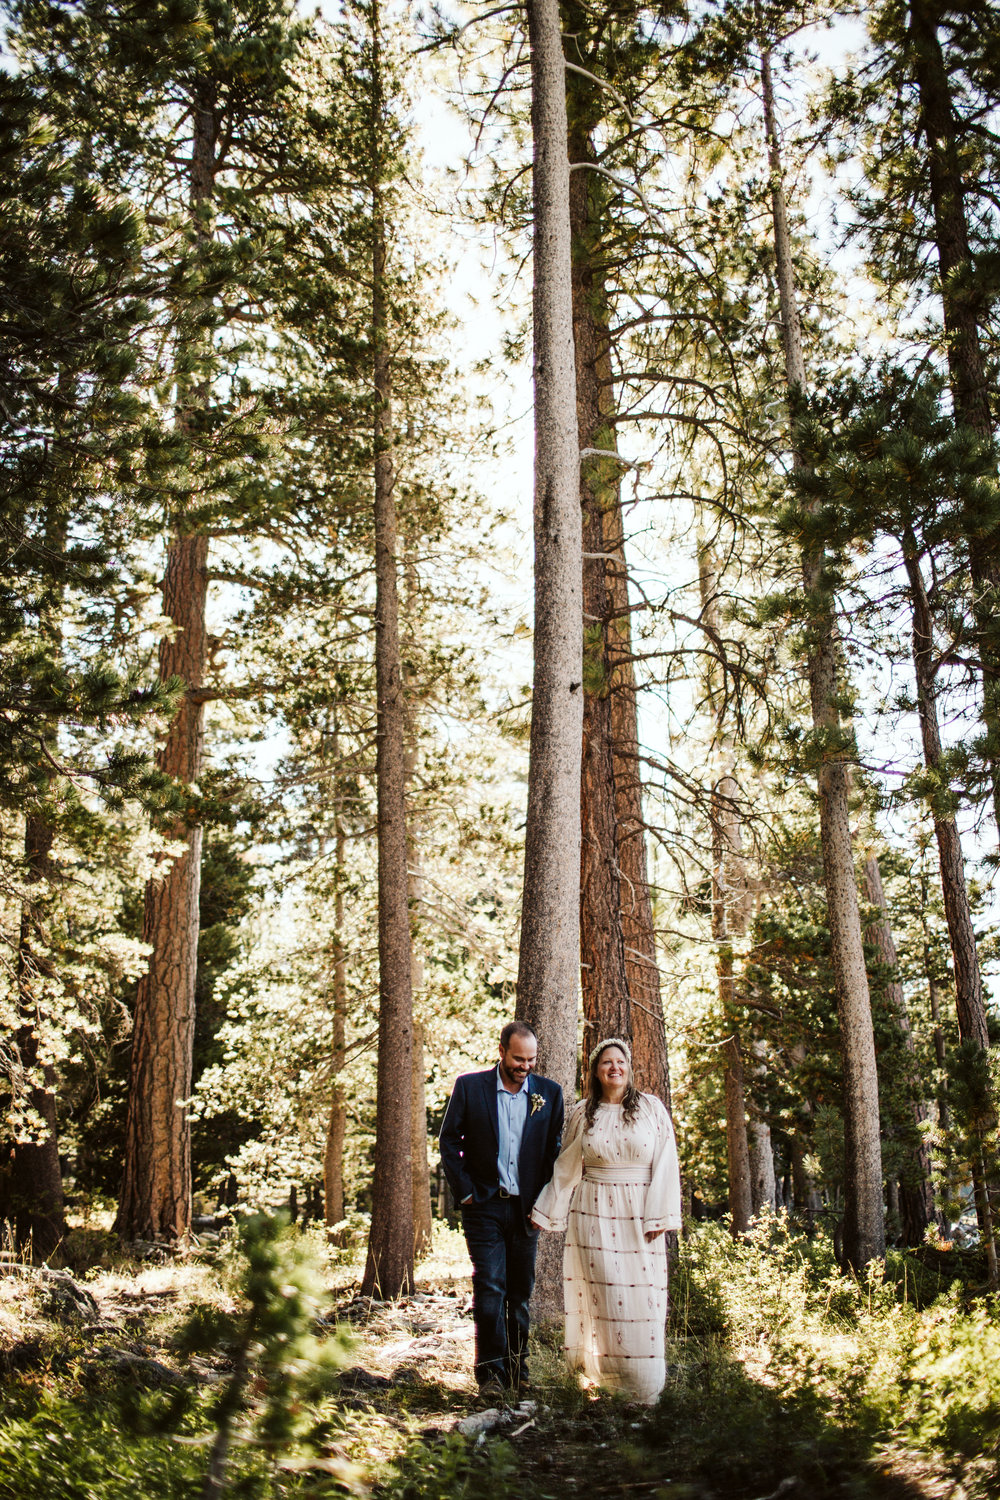 MT. TALLAC ELOPEMENT + INTIMATE WEDDING PACKAGE// STARTING AT $3800 - - up to 8 guests - 4 hours of coverage - phone consult - location insight - online gallery of high-res images + usb - 10 matted 5x7 prints in keepsake box* weekday pricing $3800. weekend pricing $4300*